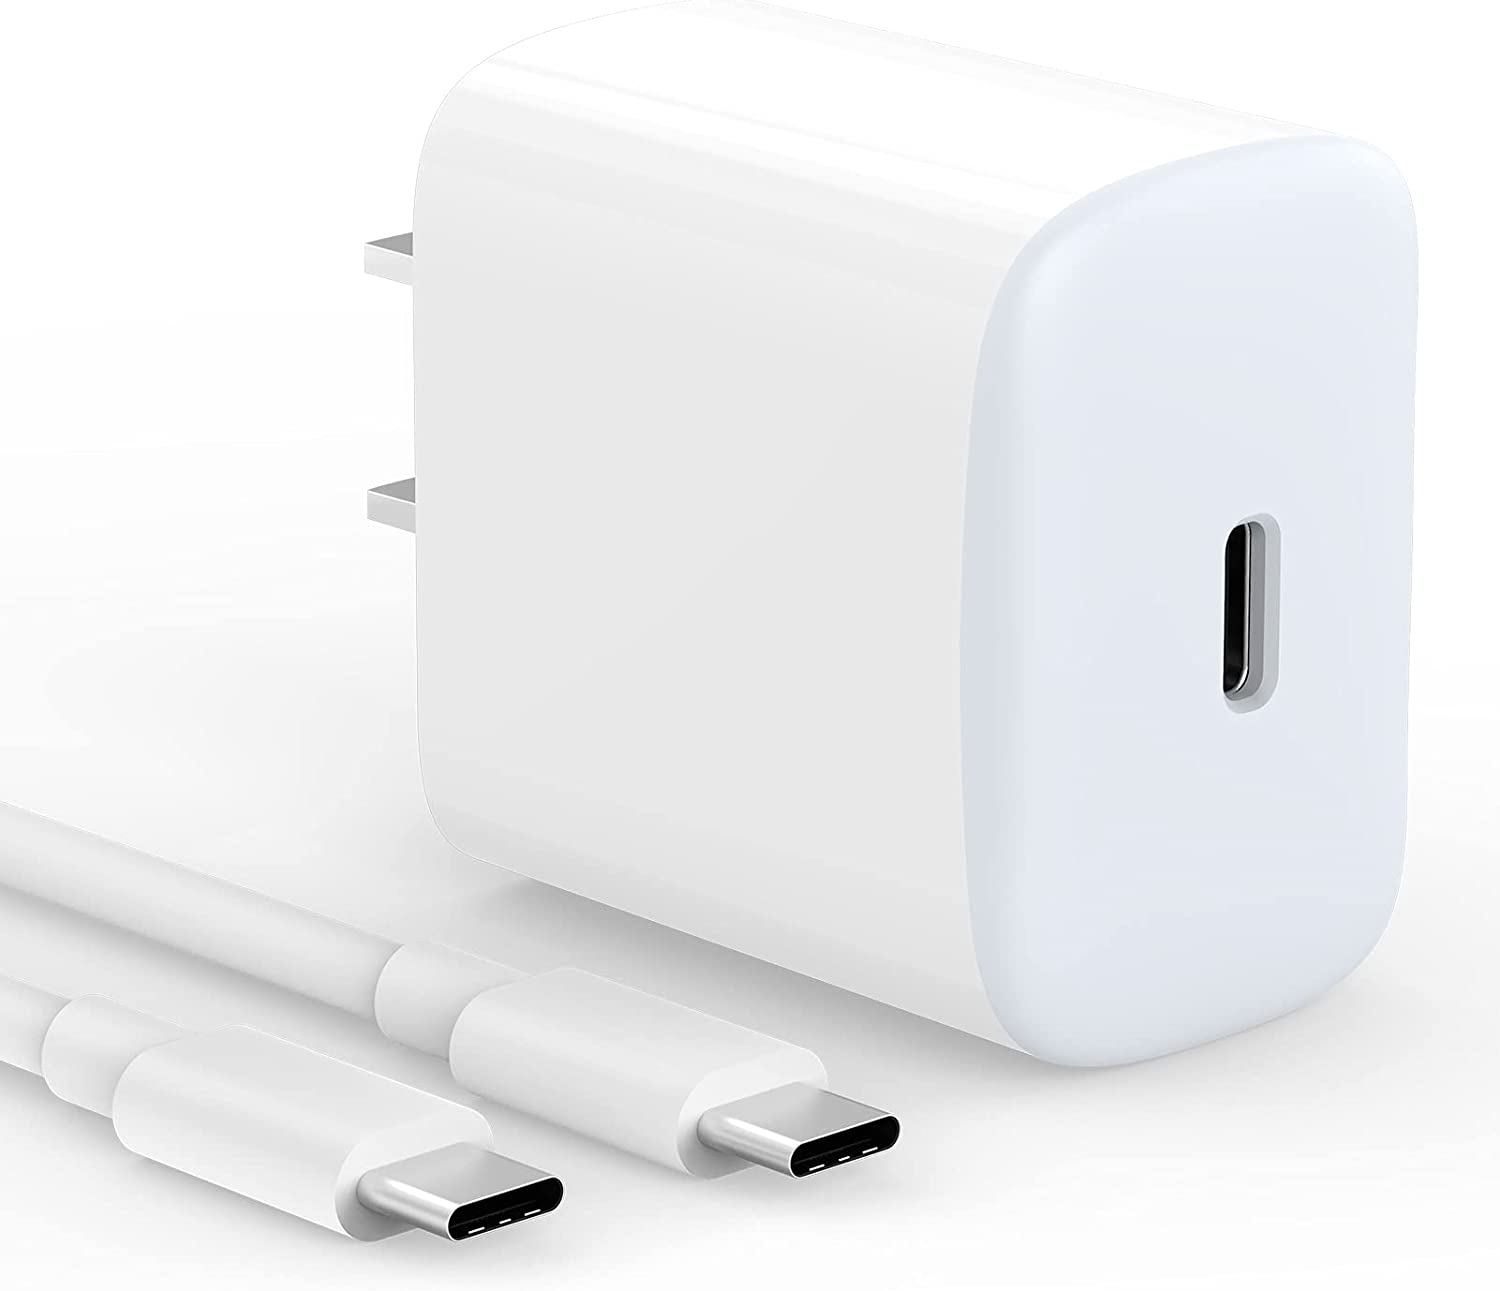 20W USB C Fast Wall Charger Compatible with iPad Pro 12.9/11 inch 2021/2020/ 2018, iPad Air 10.9 inch 4th Gen and Google Pixel Cellphone. 6.6 ft USB C-C Cable Included